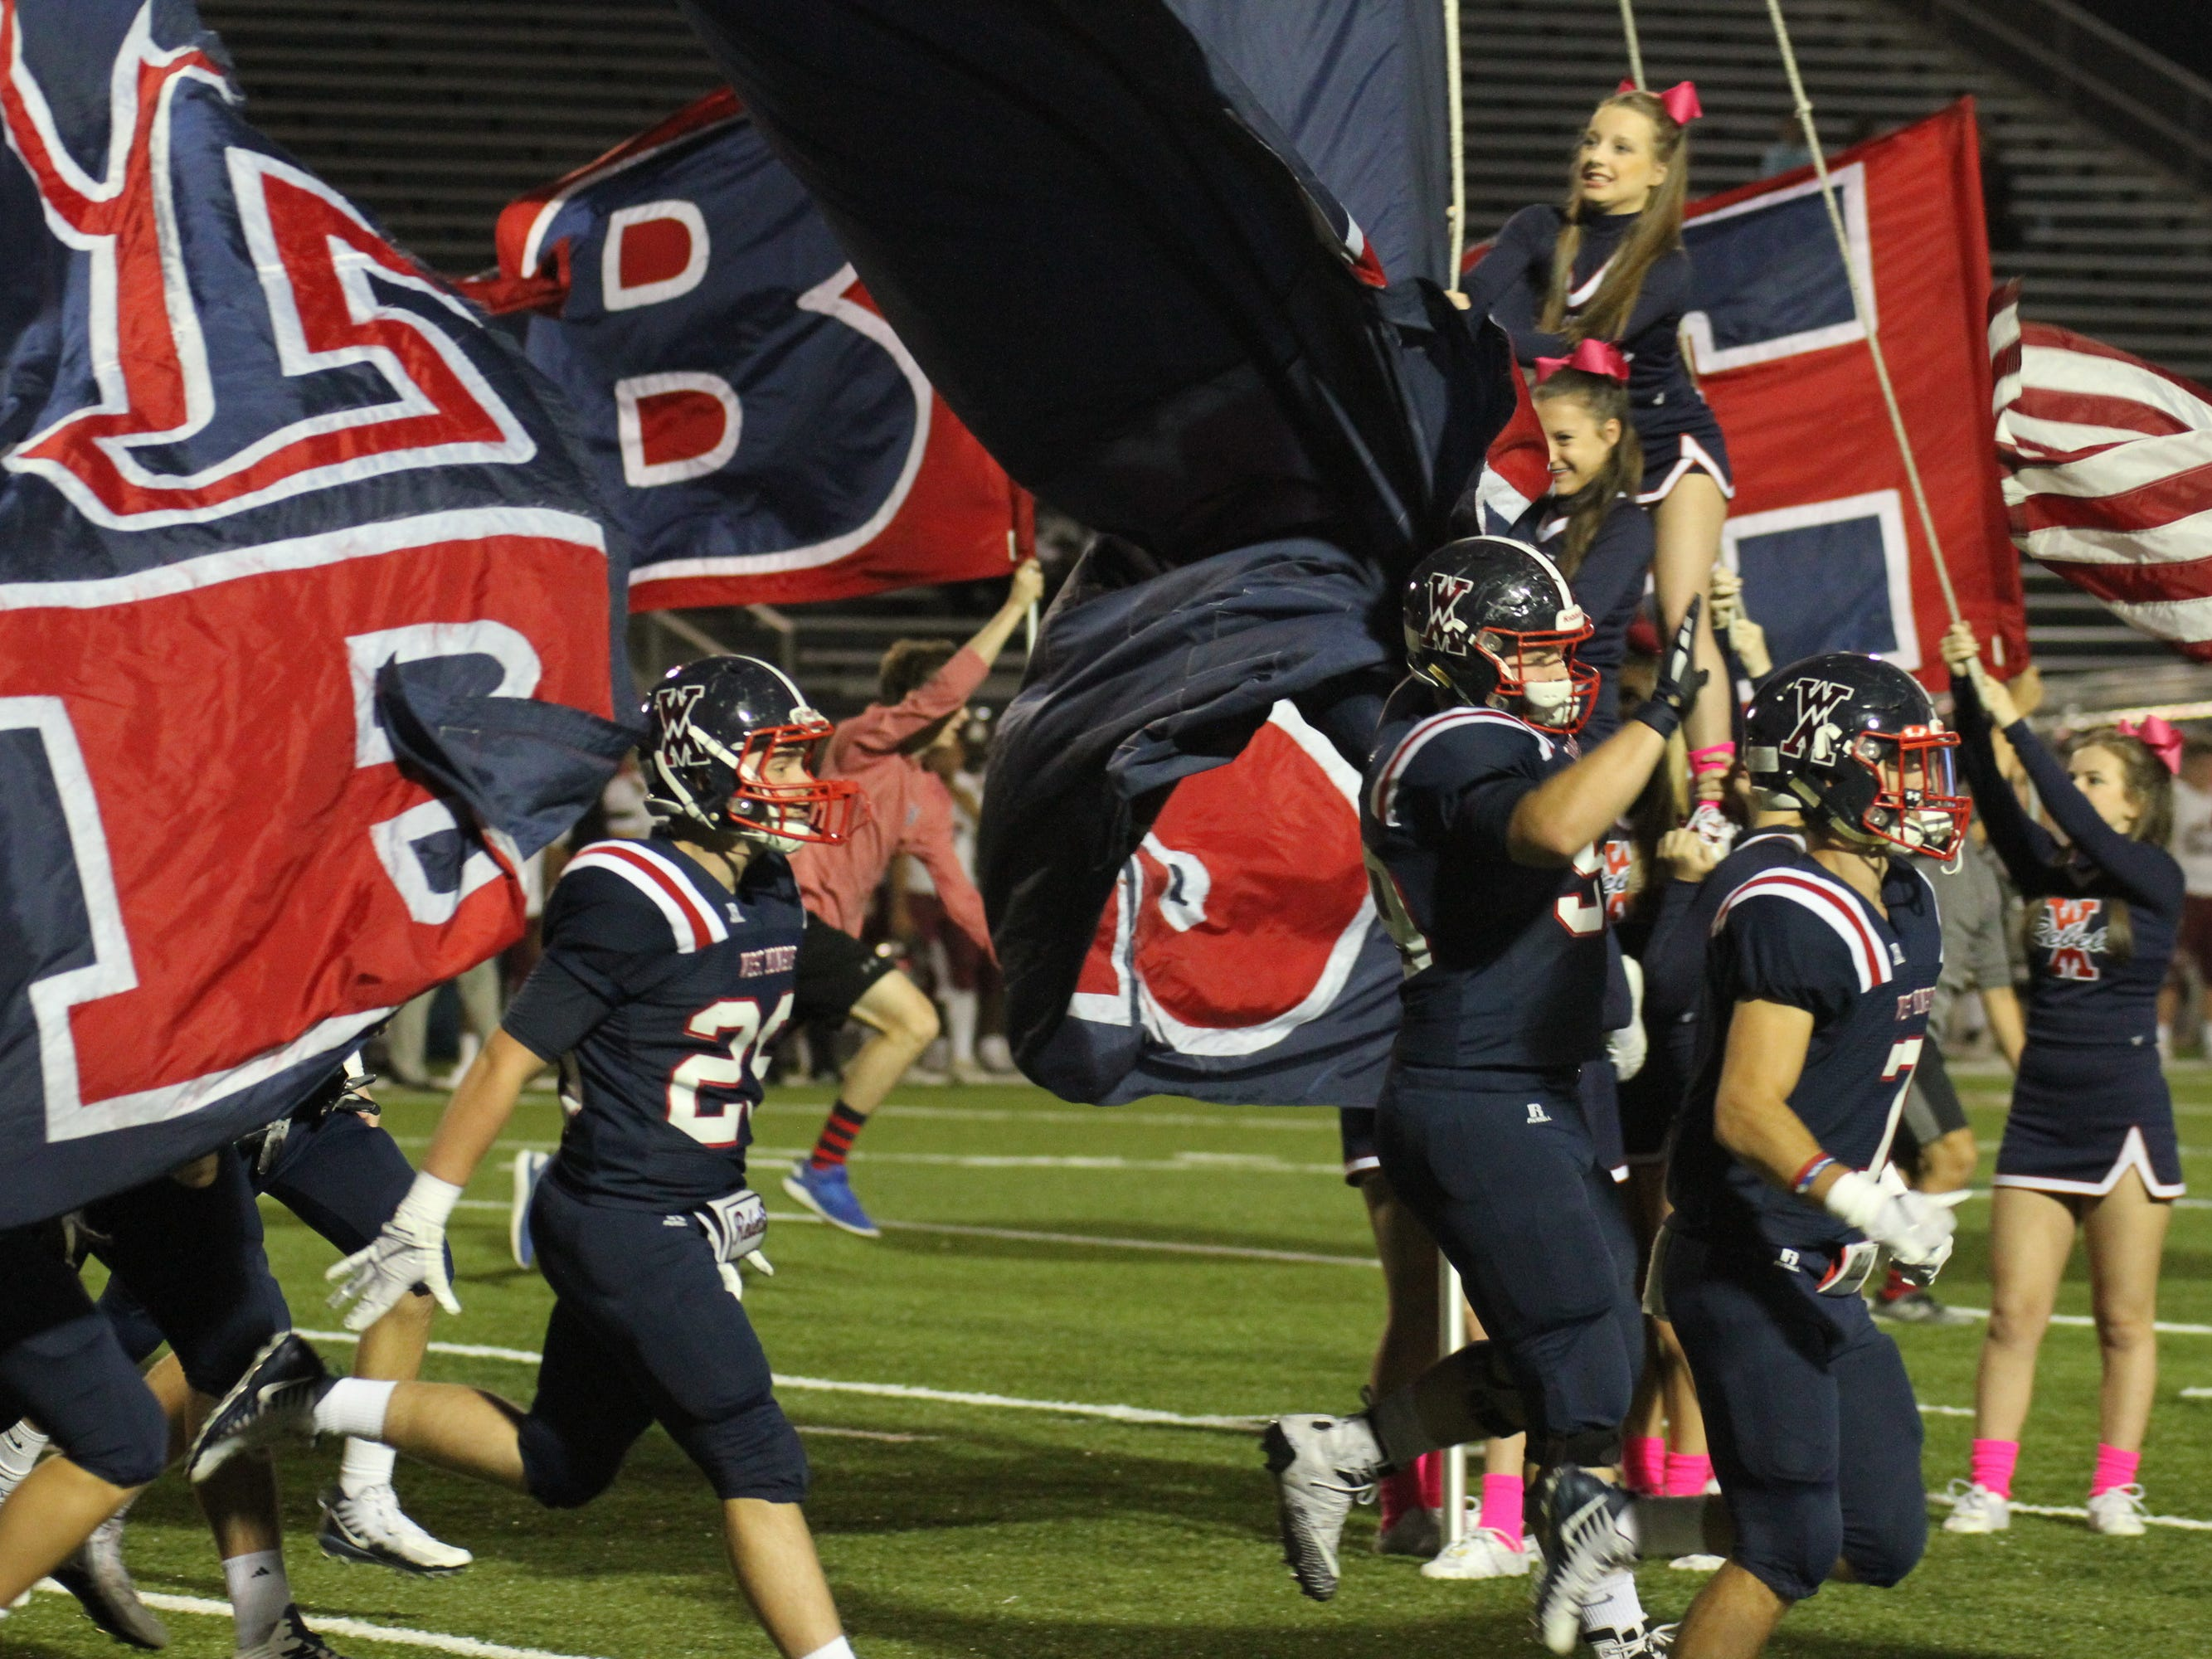 West Monroe celebrates Homecoming with a district win over Pineville, 60-14 at West Monroe High School in West Monroe, La. on Oct. 19.